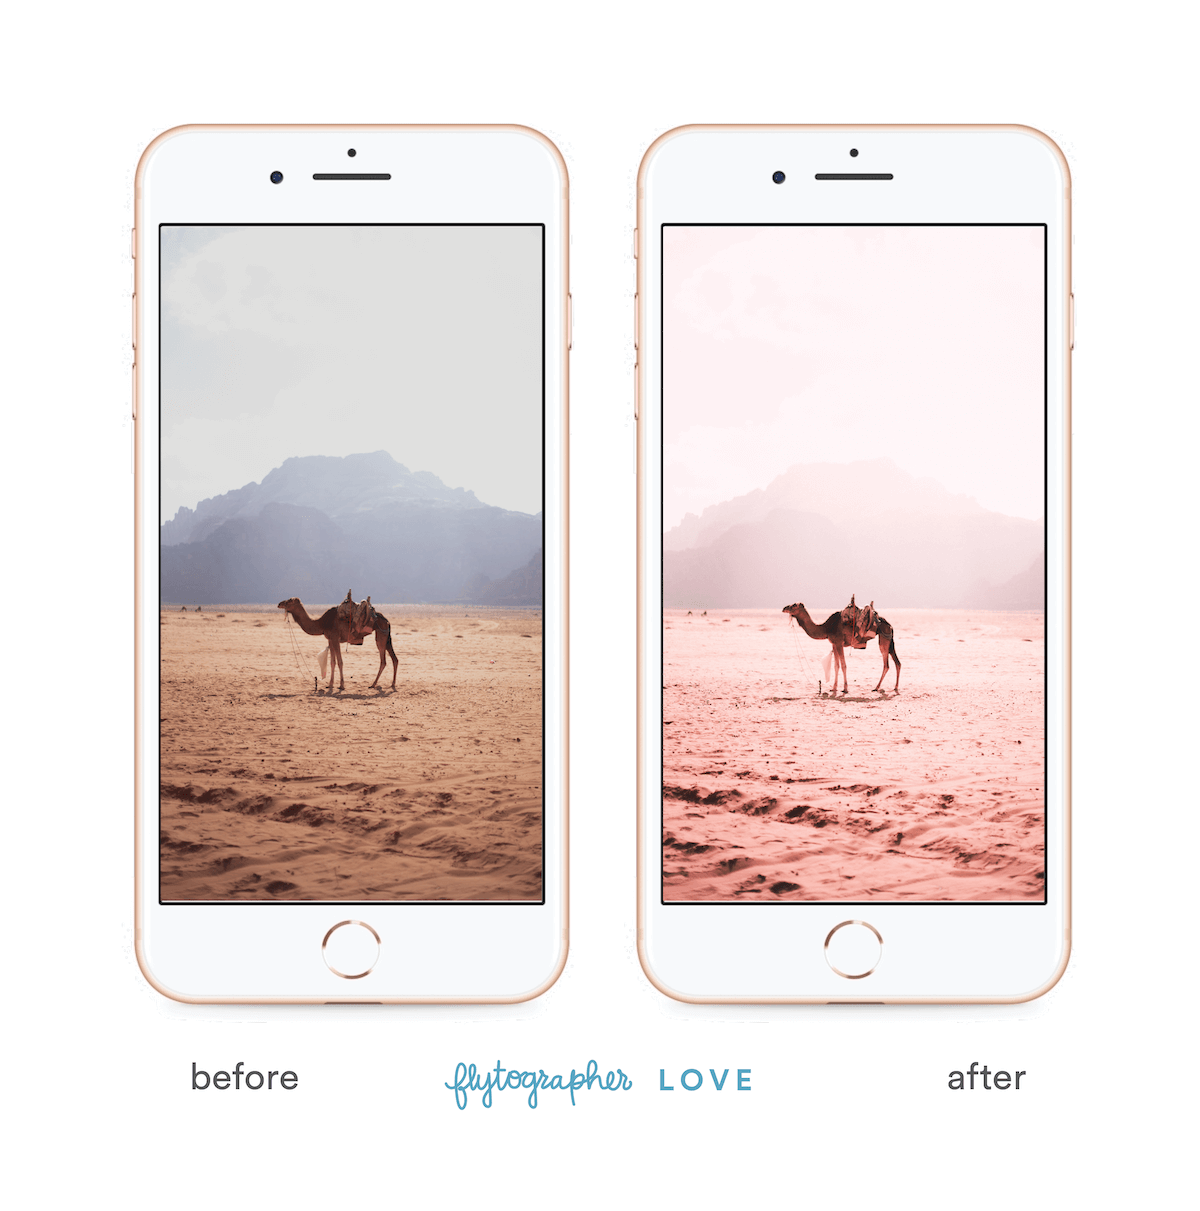 Camel picture before and after 'Flytographer Love' preset